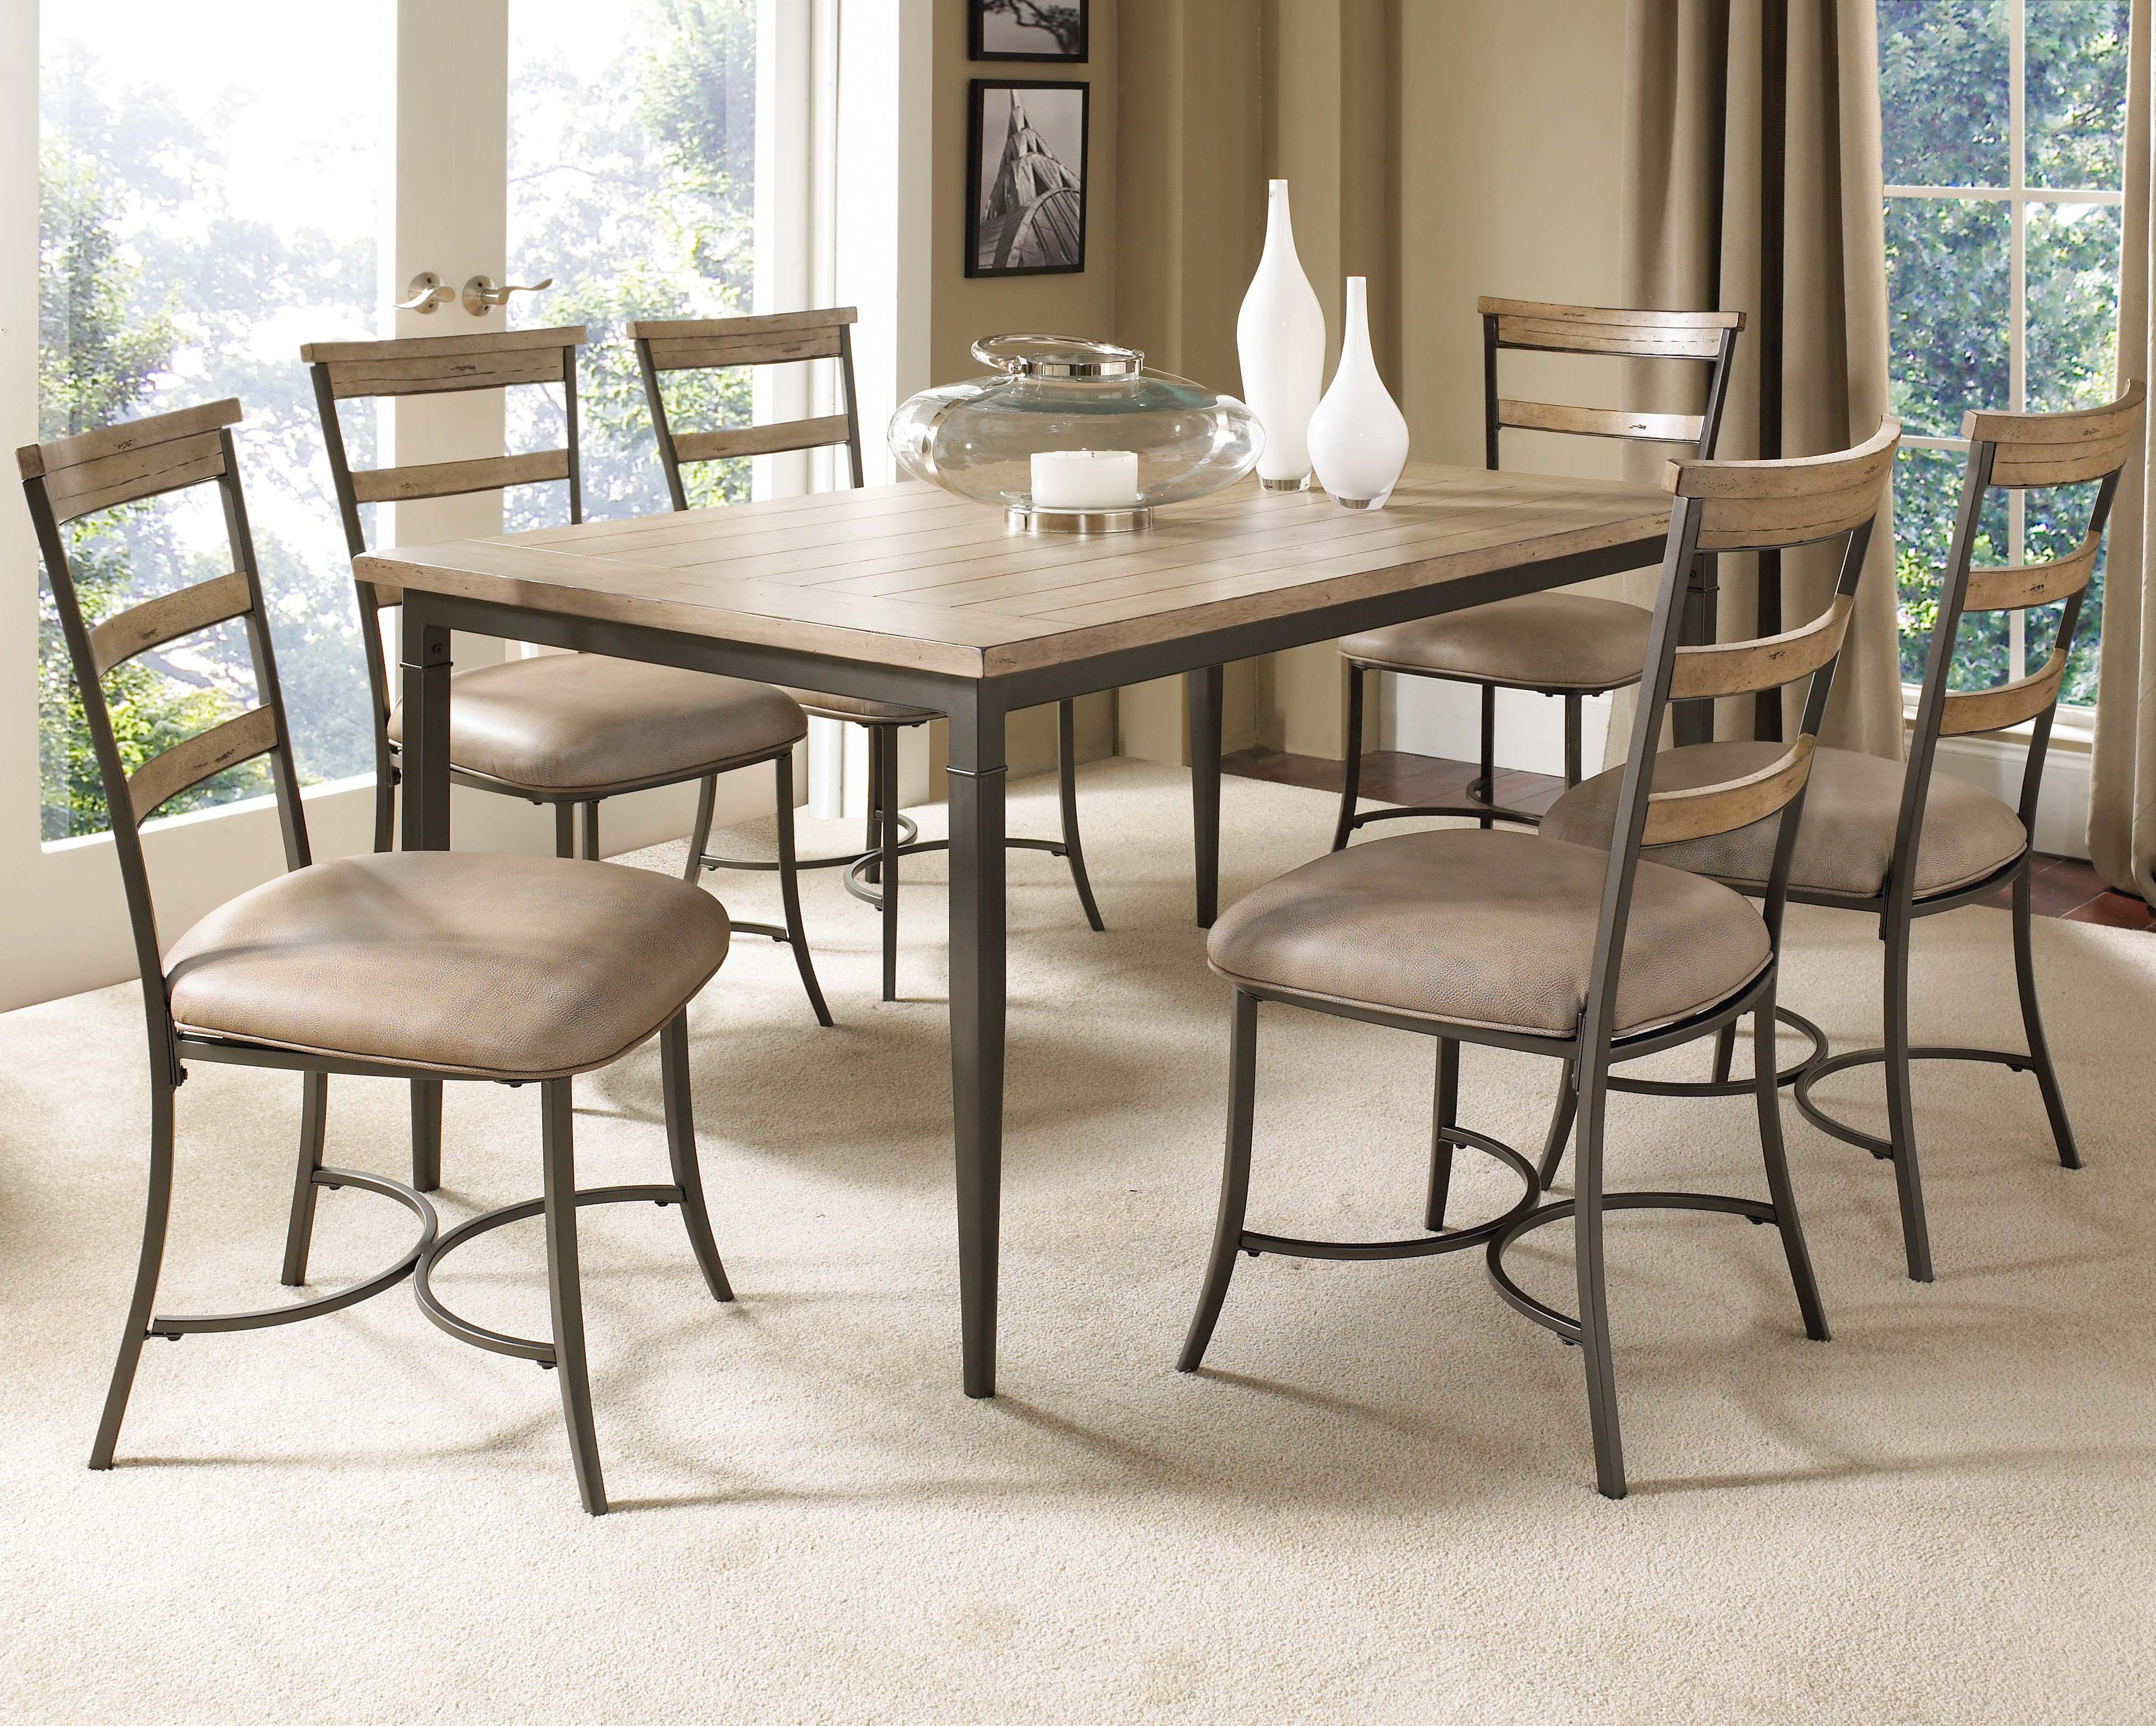 Hillsdale Charleston 5 Piece Dining Table And Chair Set   Godby Home  Furnishings   Dining 5 Piece Set Noblesville, Carmel, Avon, Indianapolis,  Indiana